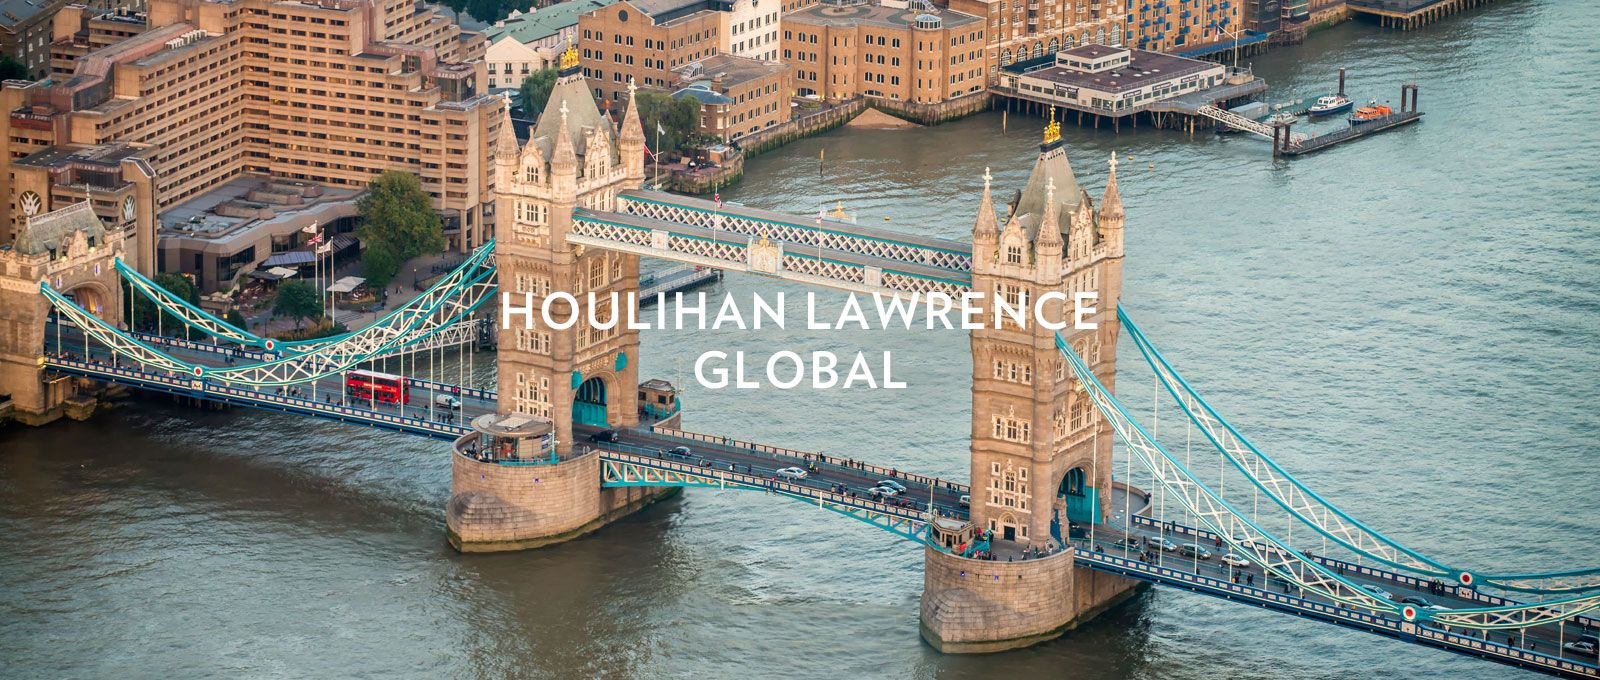 Houlihan Lawrence Global